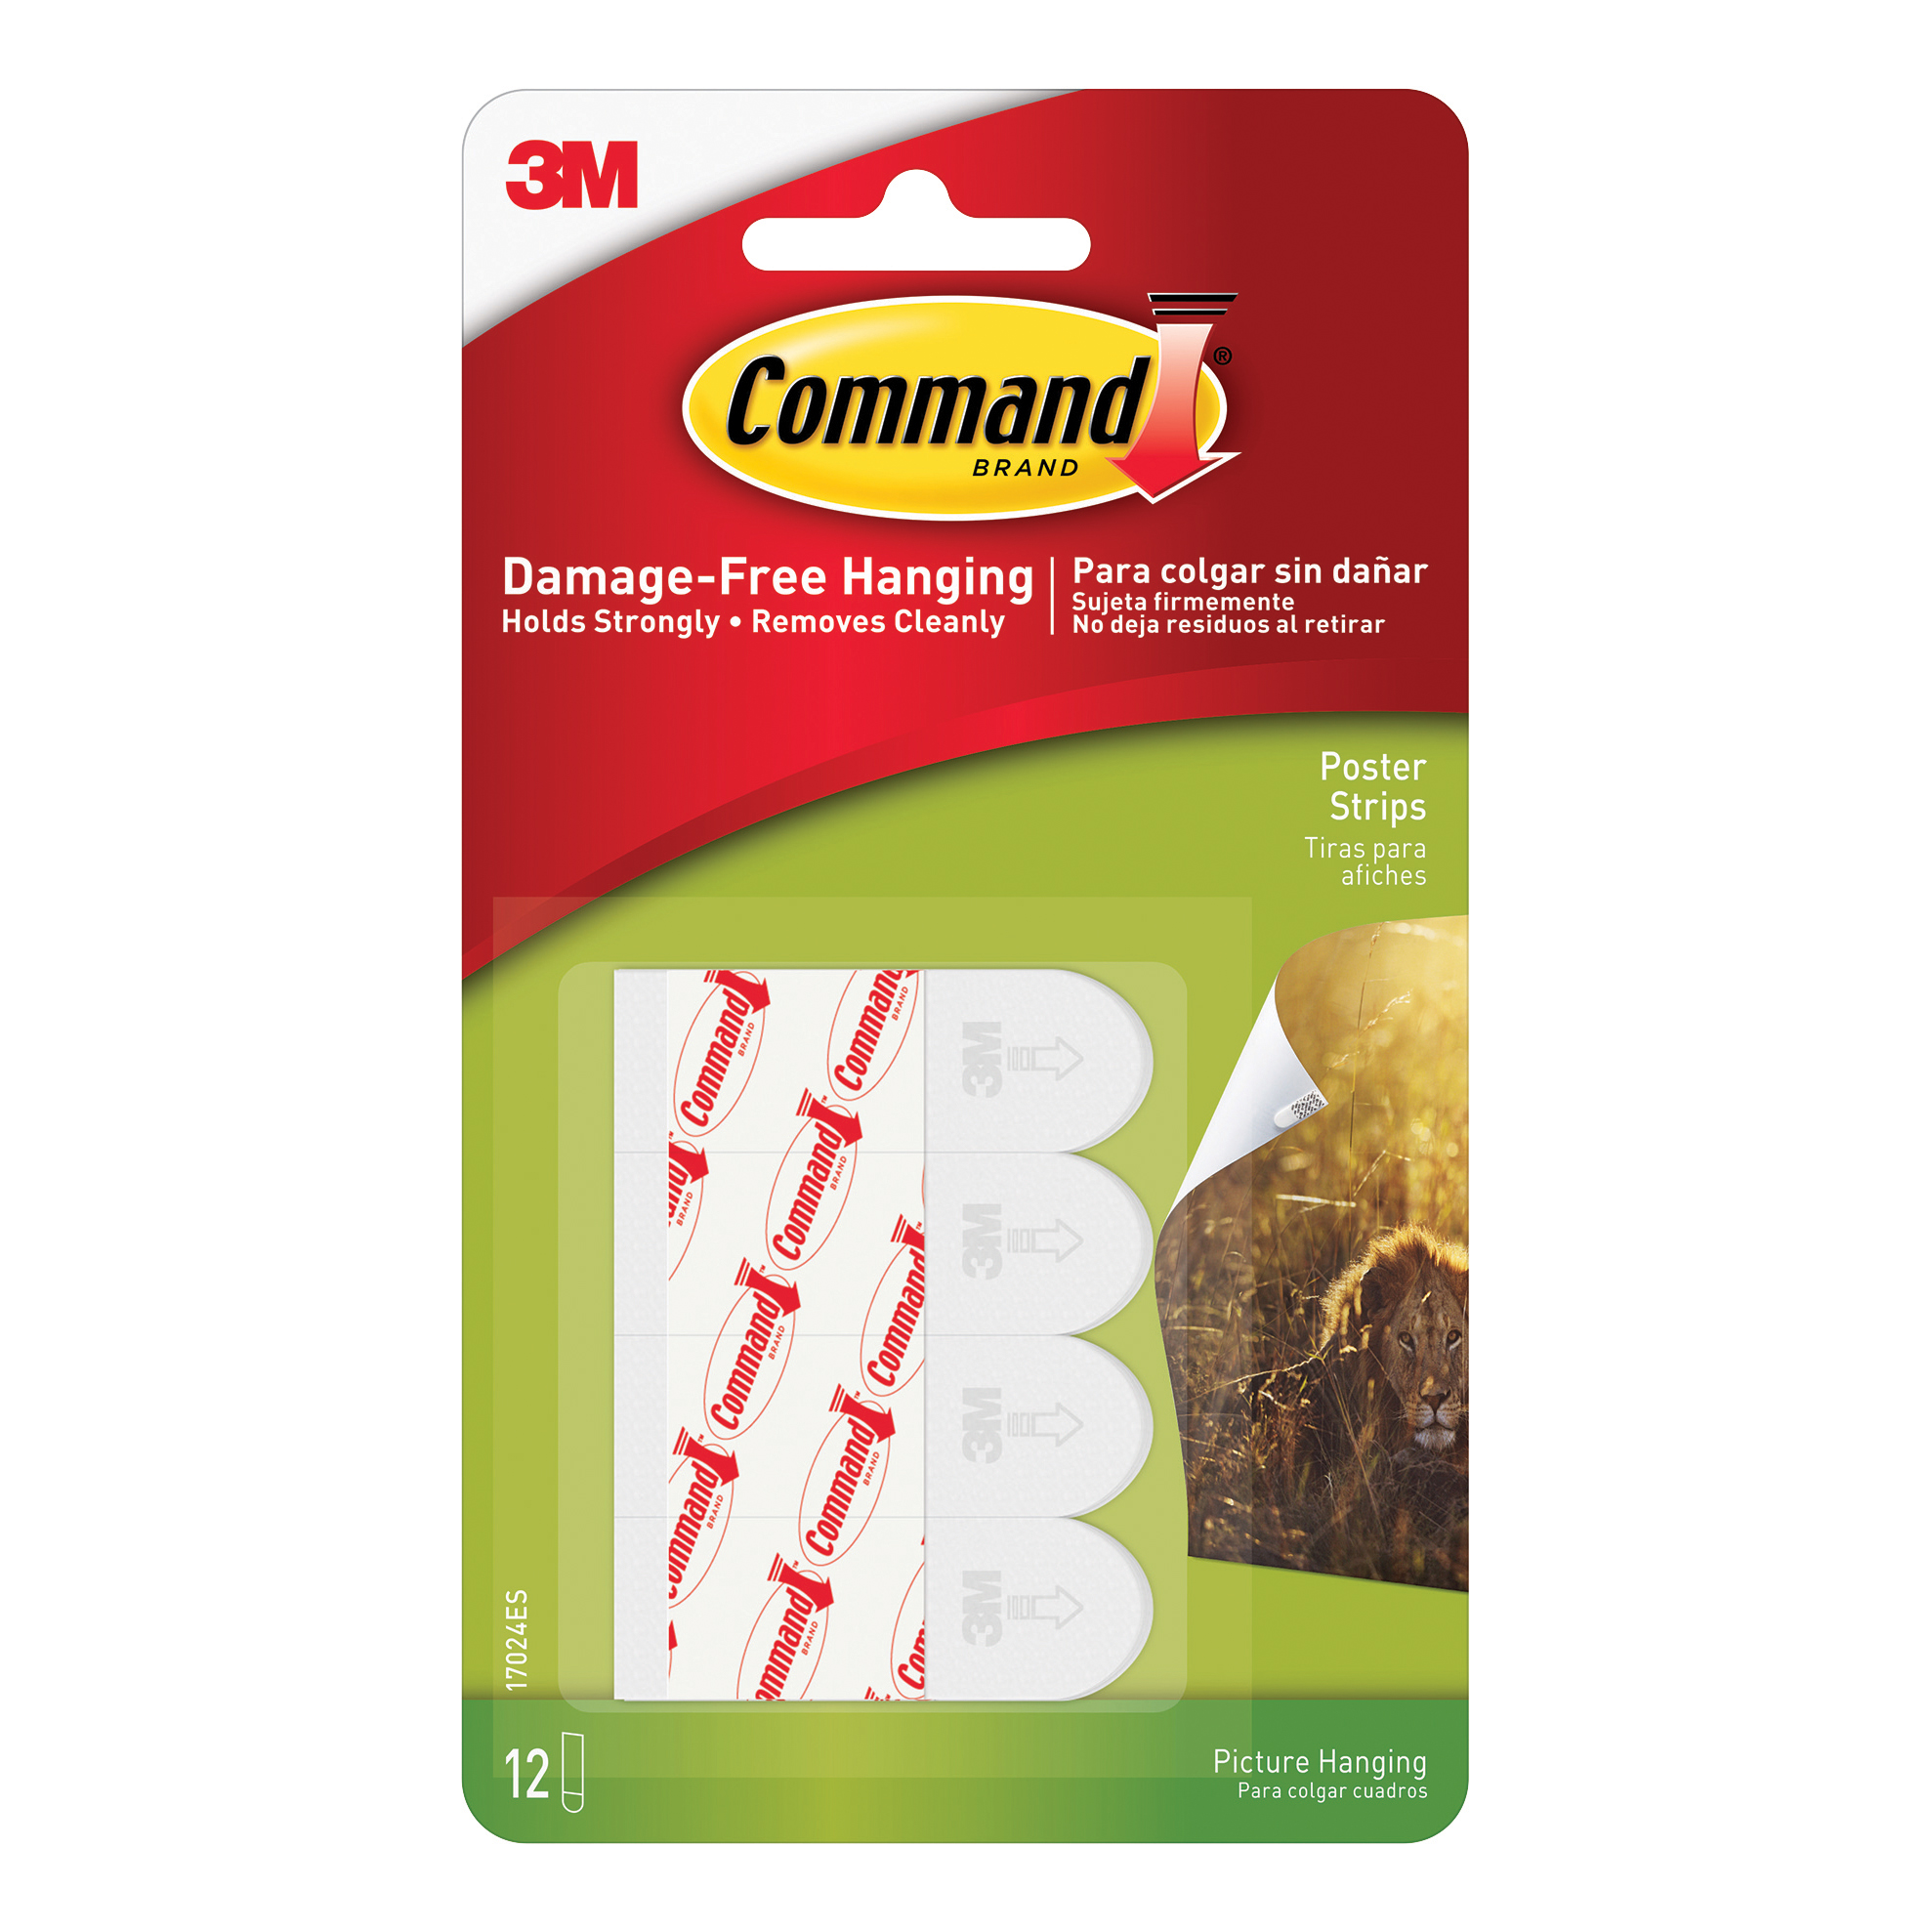 Hanging Hooks & Strips 3M Command Adhesive Poster Strips Clean-removing Holding Capacity 0.45kg Ref 17024 Pack 12